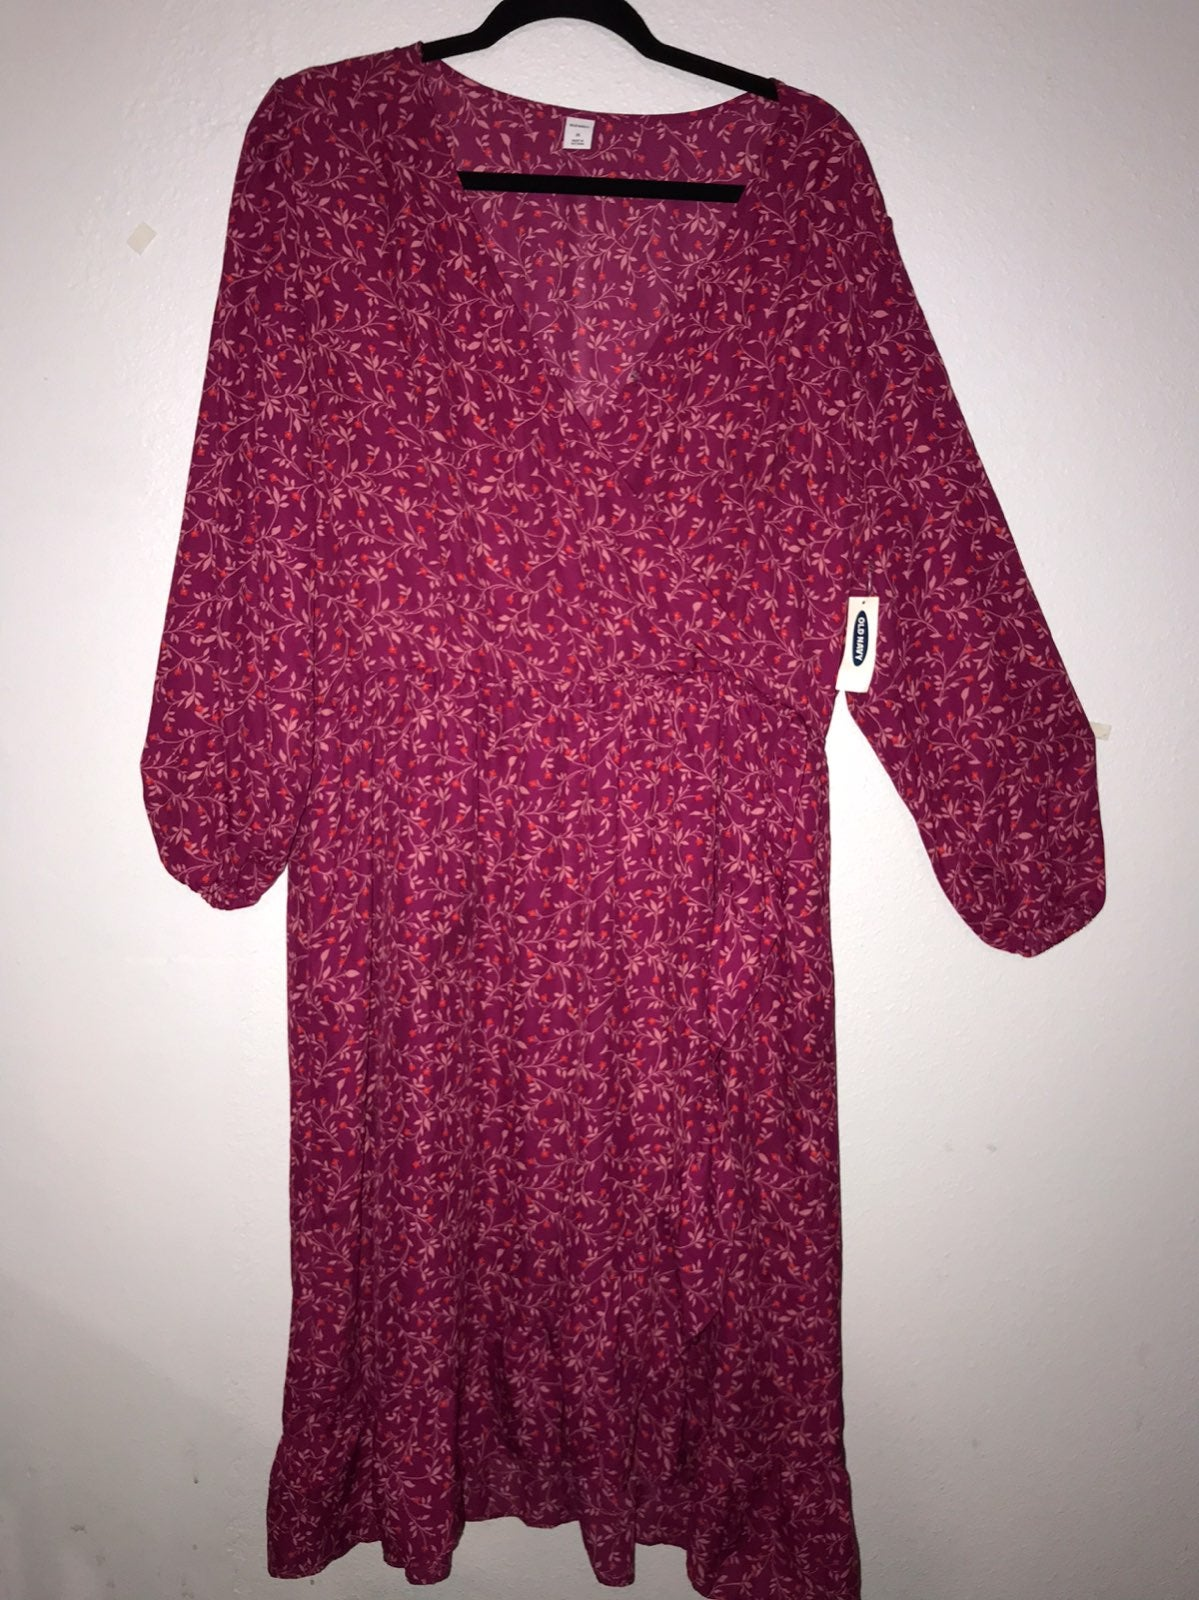 Old navy ruffle dress nwt size xl zip up